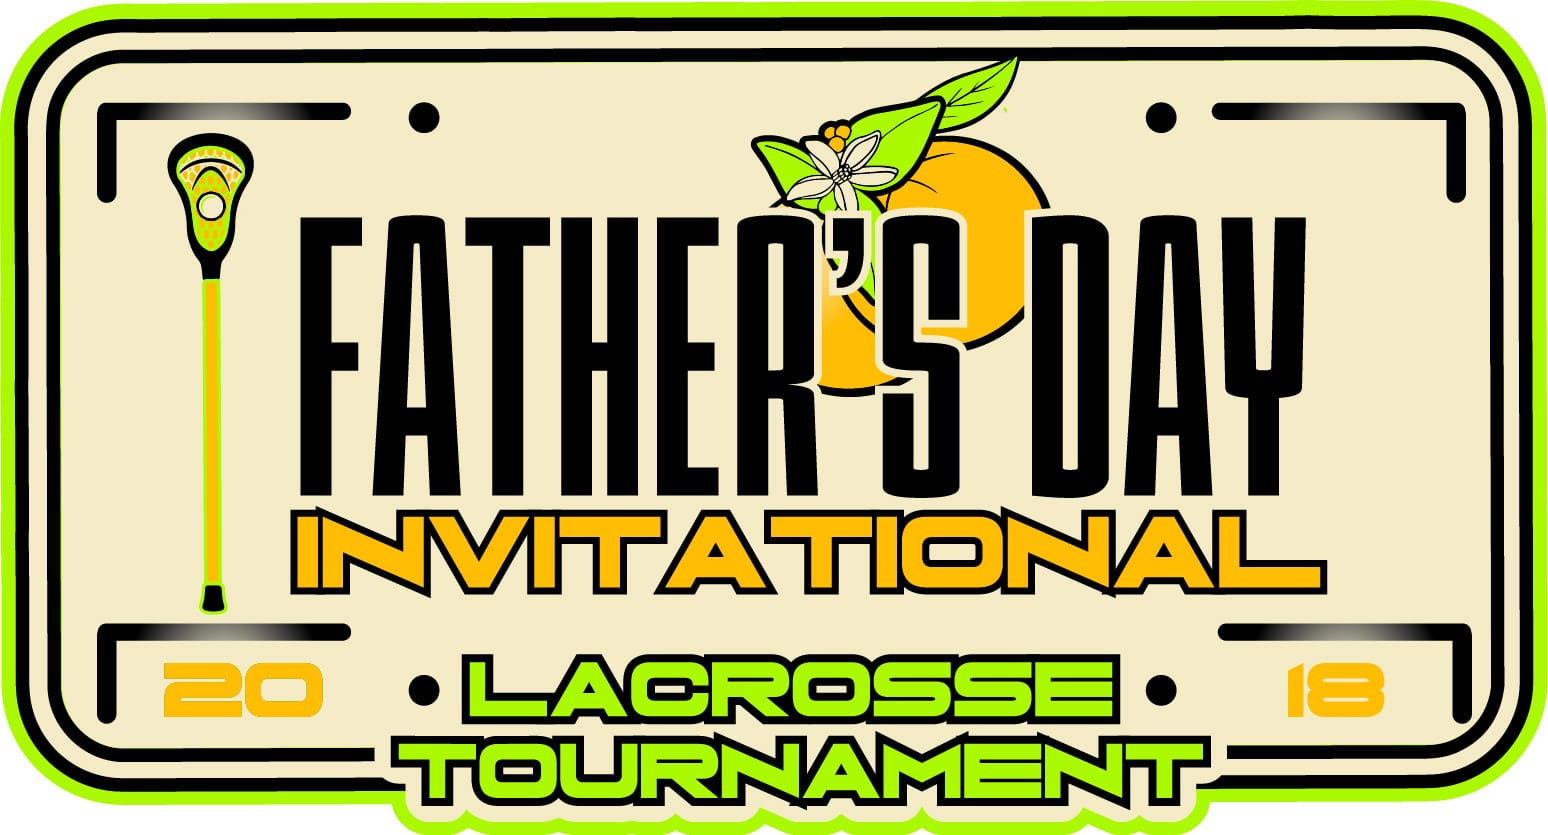 FATHER'S DAY INVITATIONAL LACROSSE TOURNAMENT 2018 t-shirt logo design